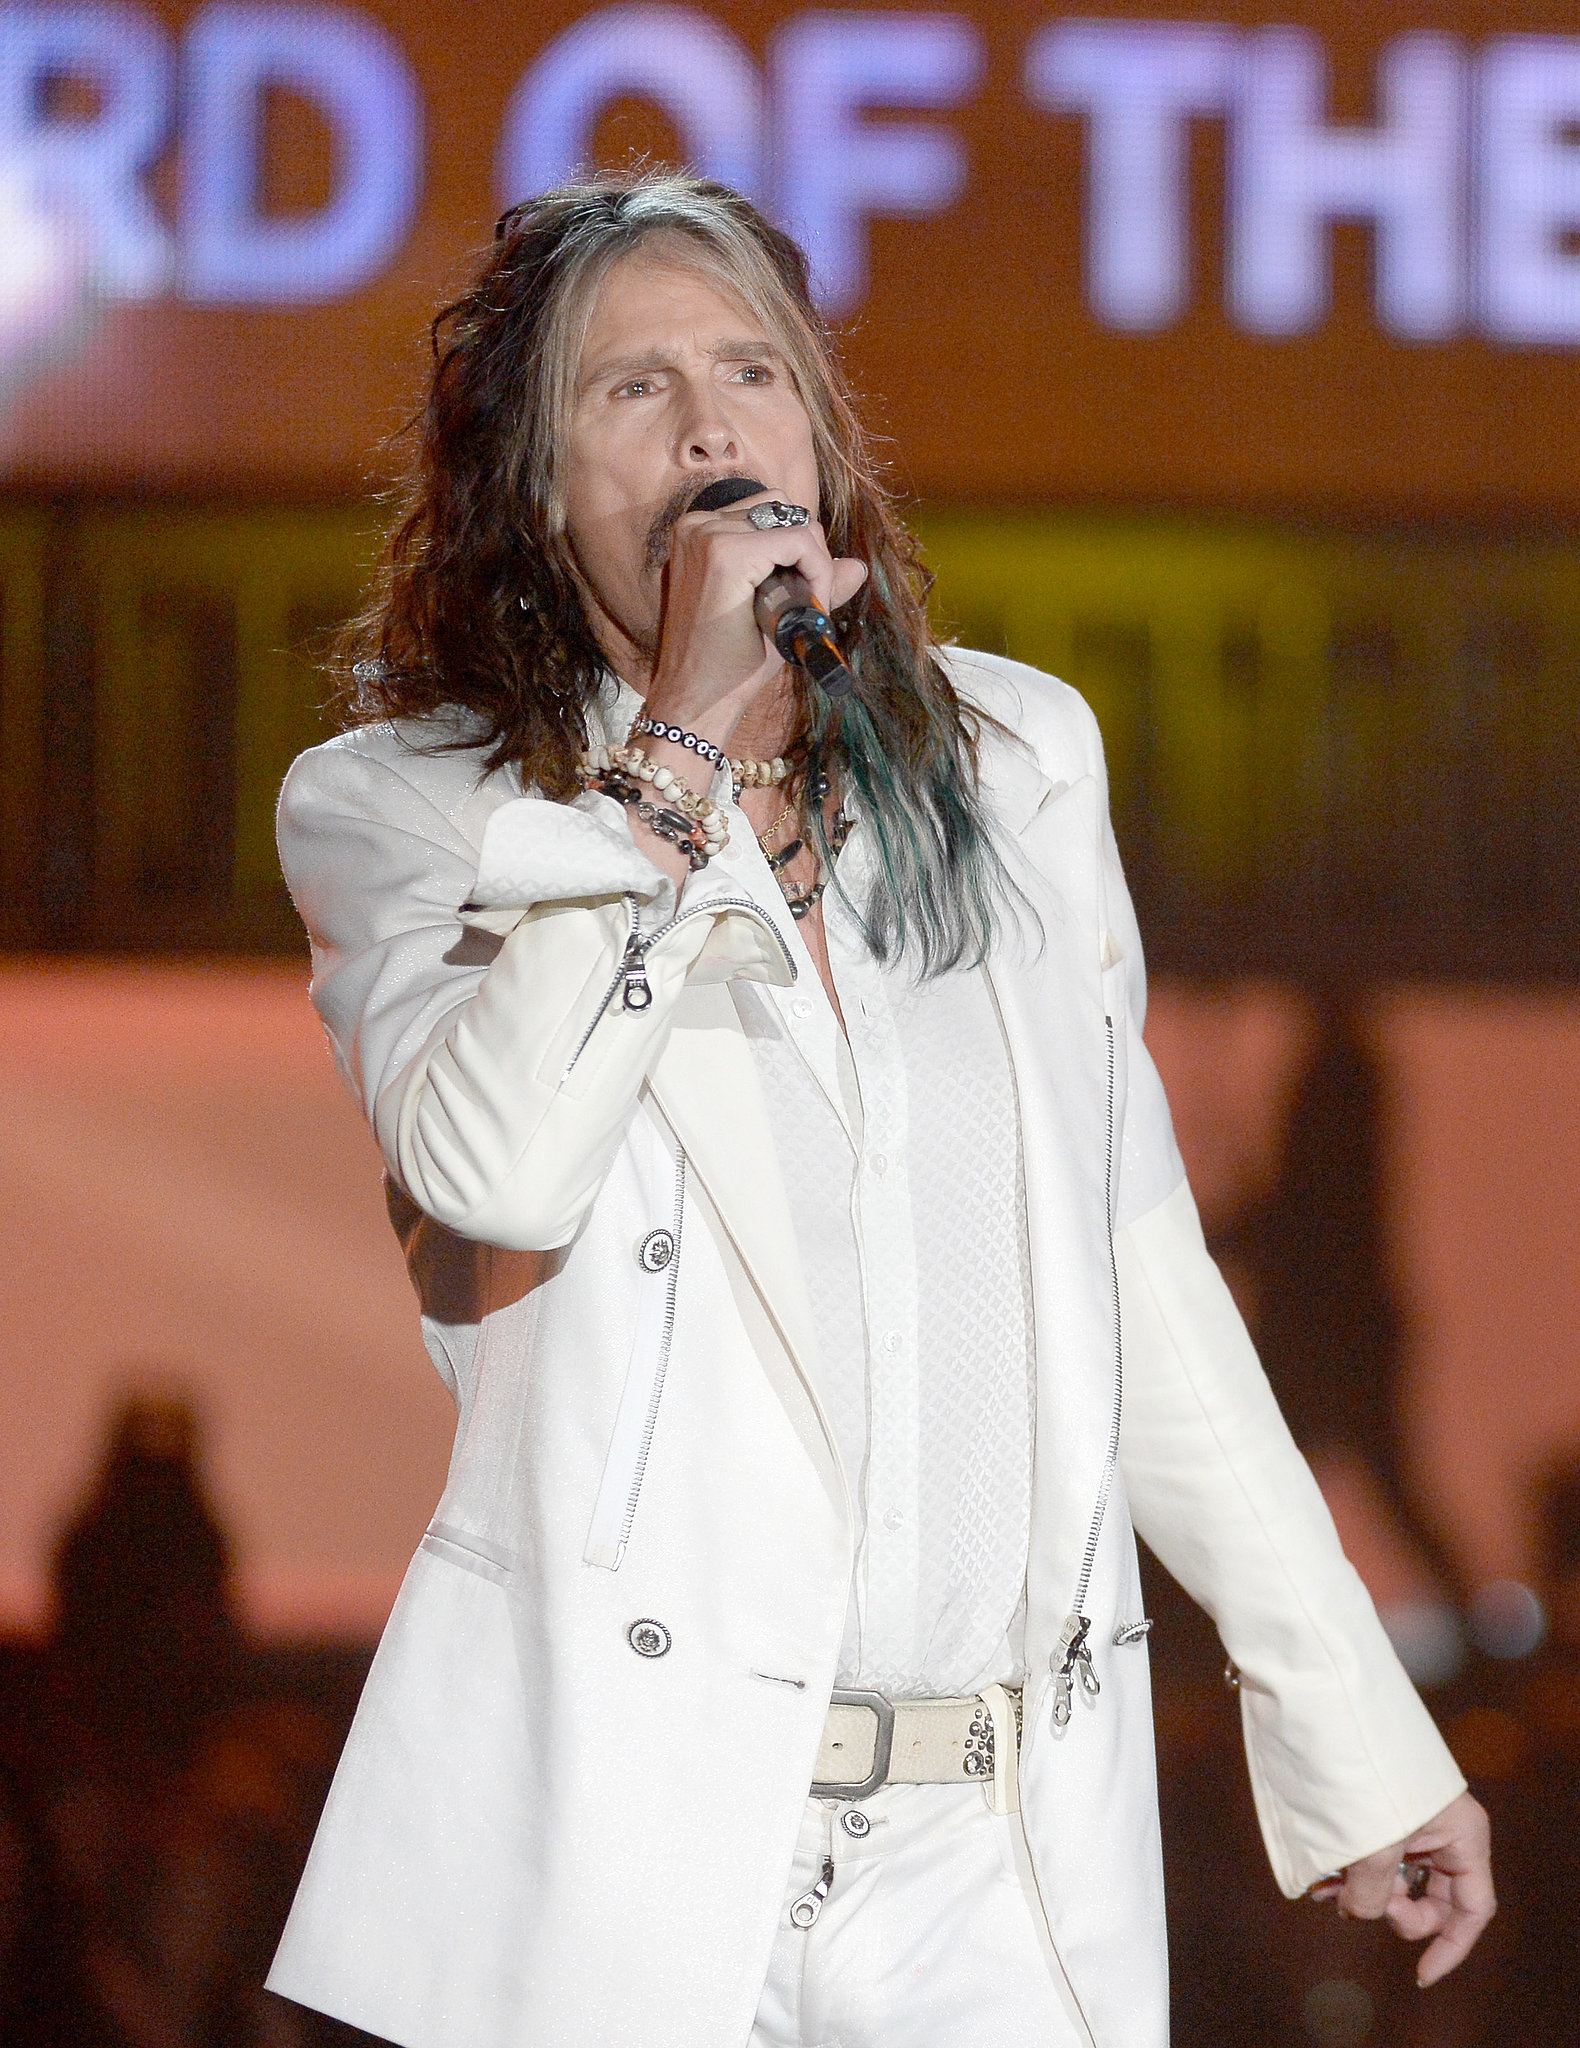 Steven Tyler sang while introducing a performance.